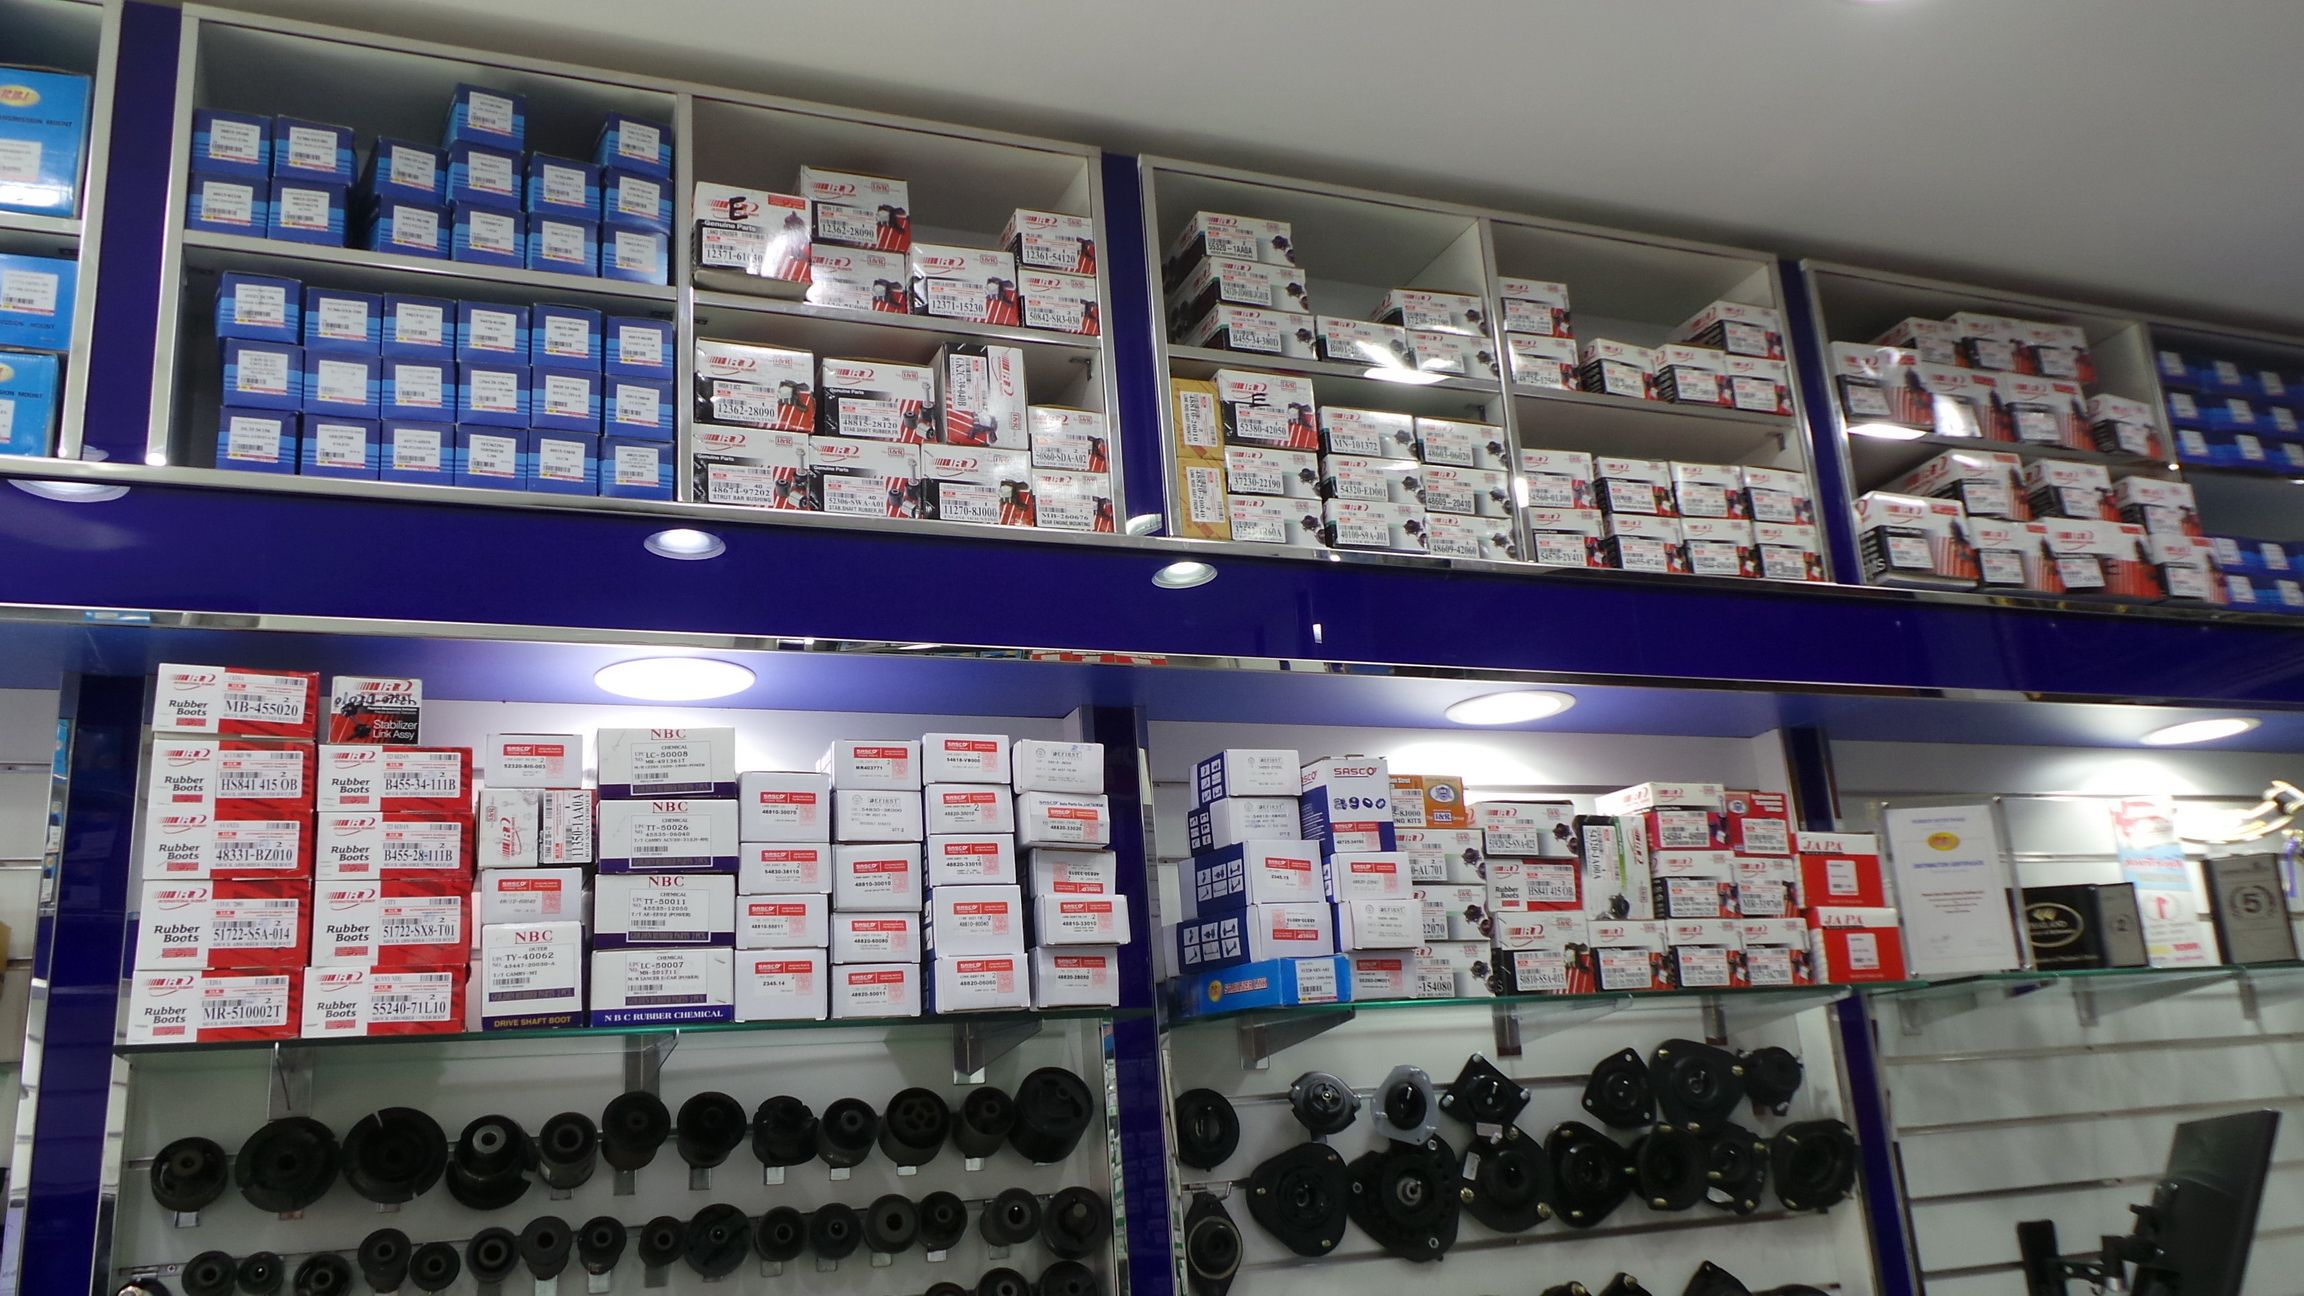 Sumar An Automotive Spare Parts Dealer In Uae We Are The Supplier Of All Sorts Of Auto Parts In Uae For Honda Toyota Mazda Kia An Mitsubishi Kia Auto Parts